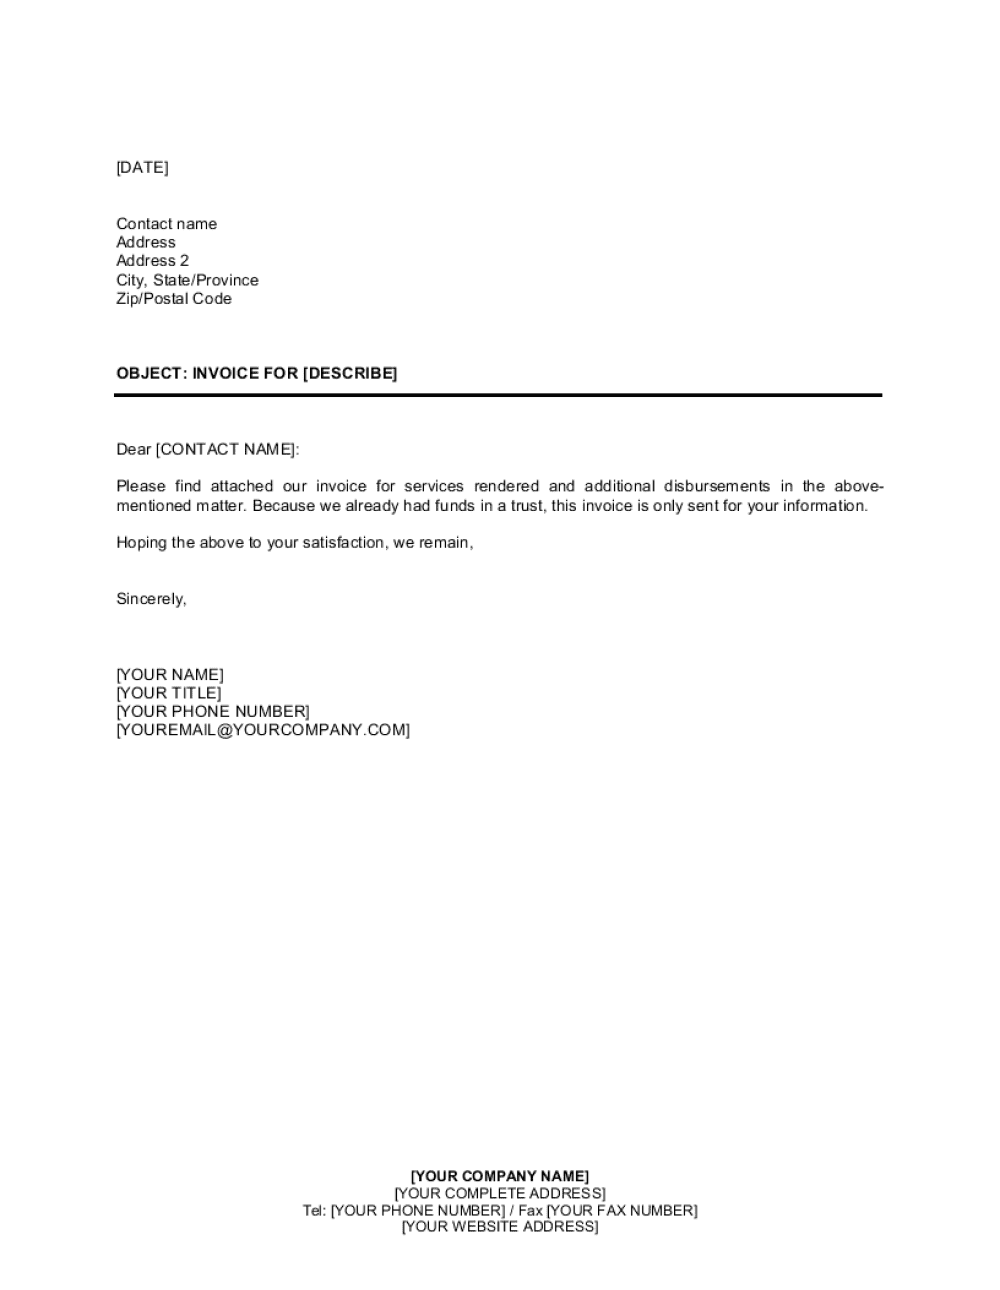 Business Letter Format With Attachments - Birthday Letter